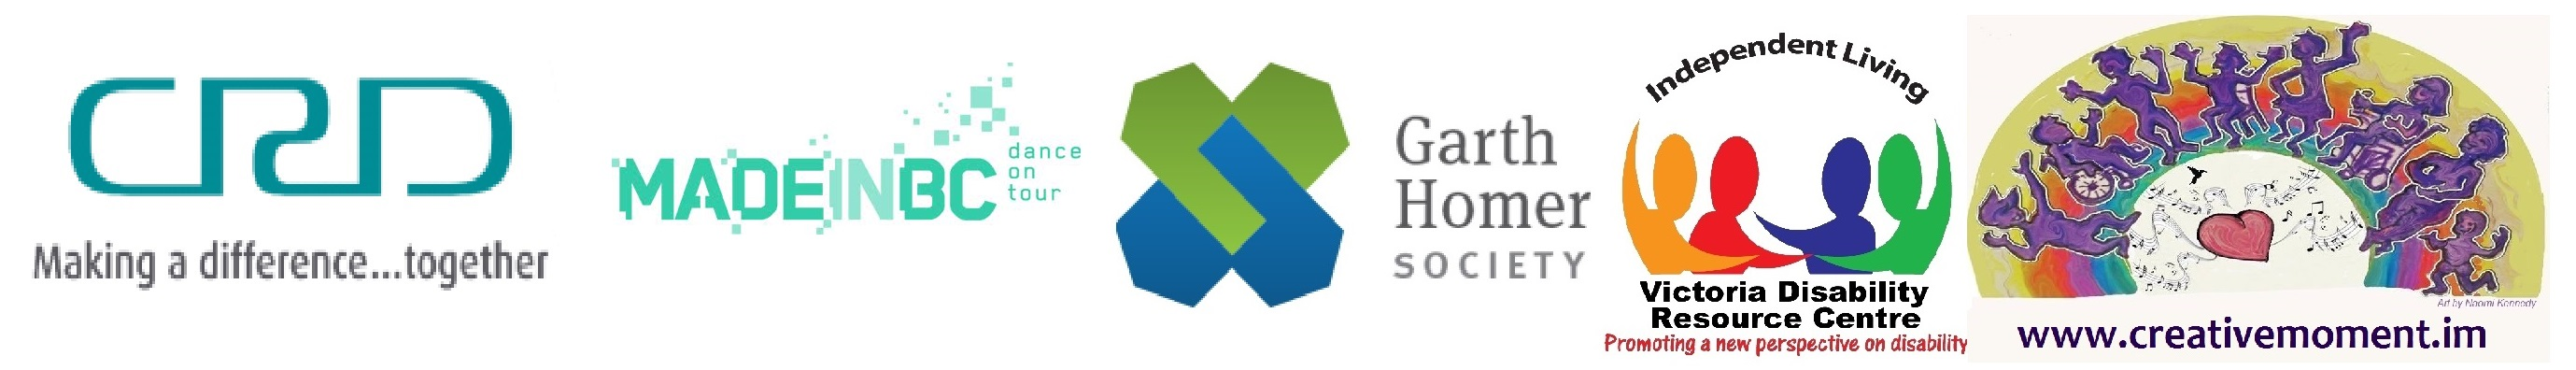 Logos of the Capital Region District, Made in BC, the Garth Homer Society, the Victoria Disability Resource Centre, and Creative Moment.